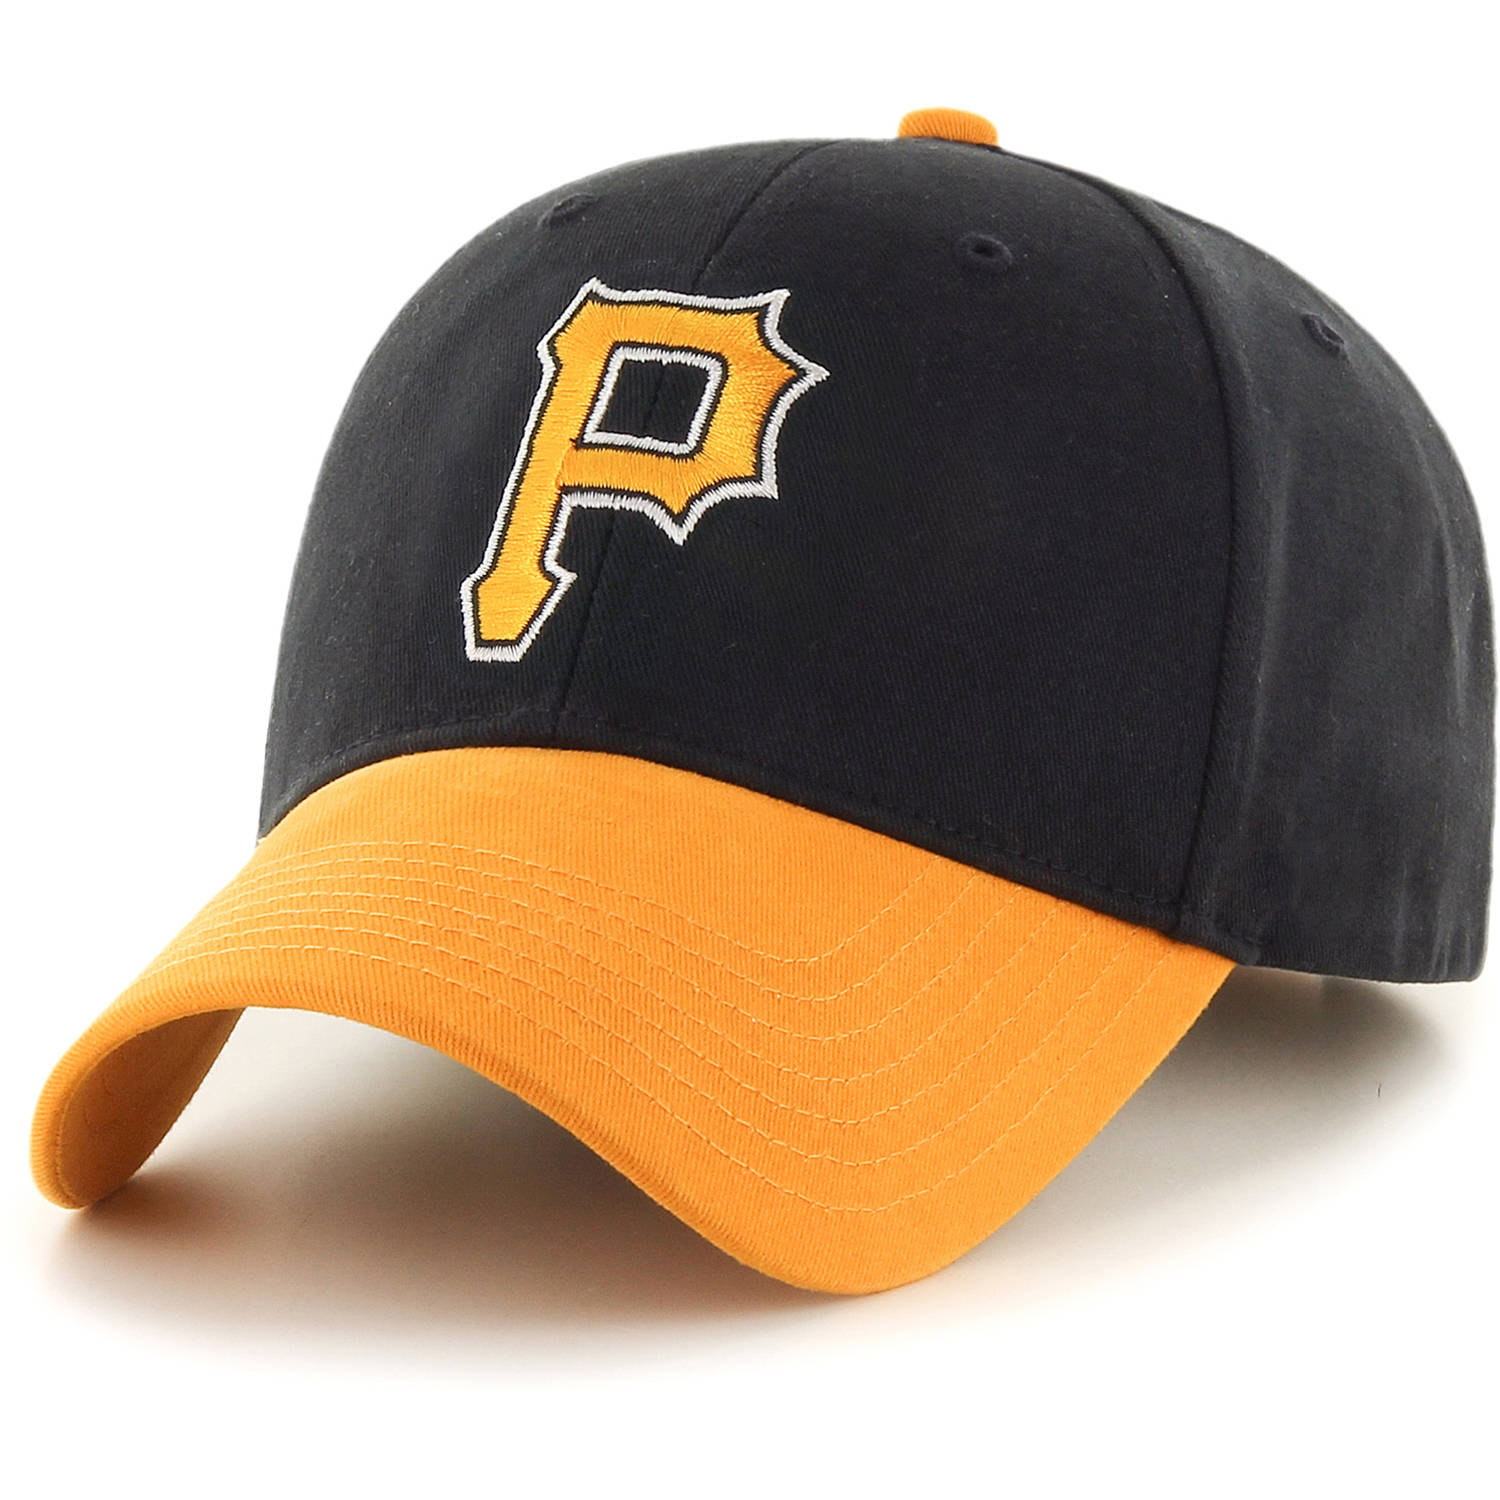 MLB Pittsburgh Pirates Reverse Basic Adjustable Cap/Hat by Fan Favorite